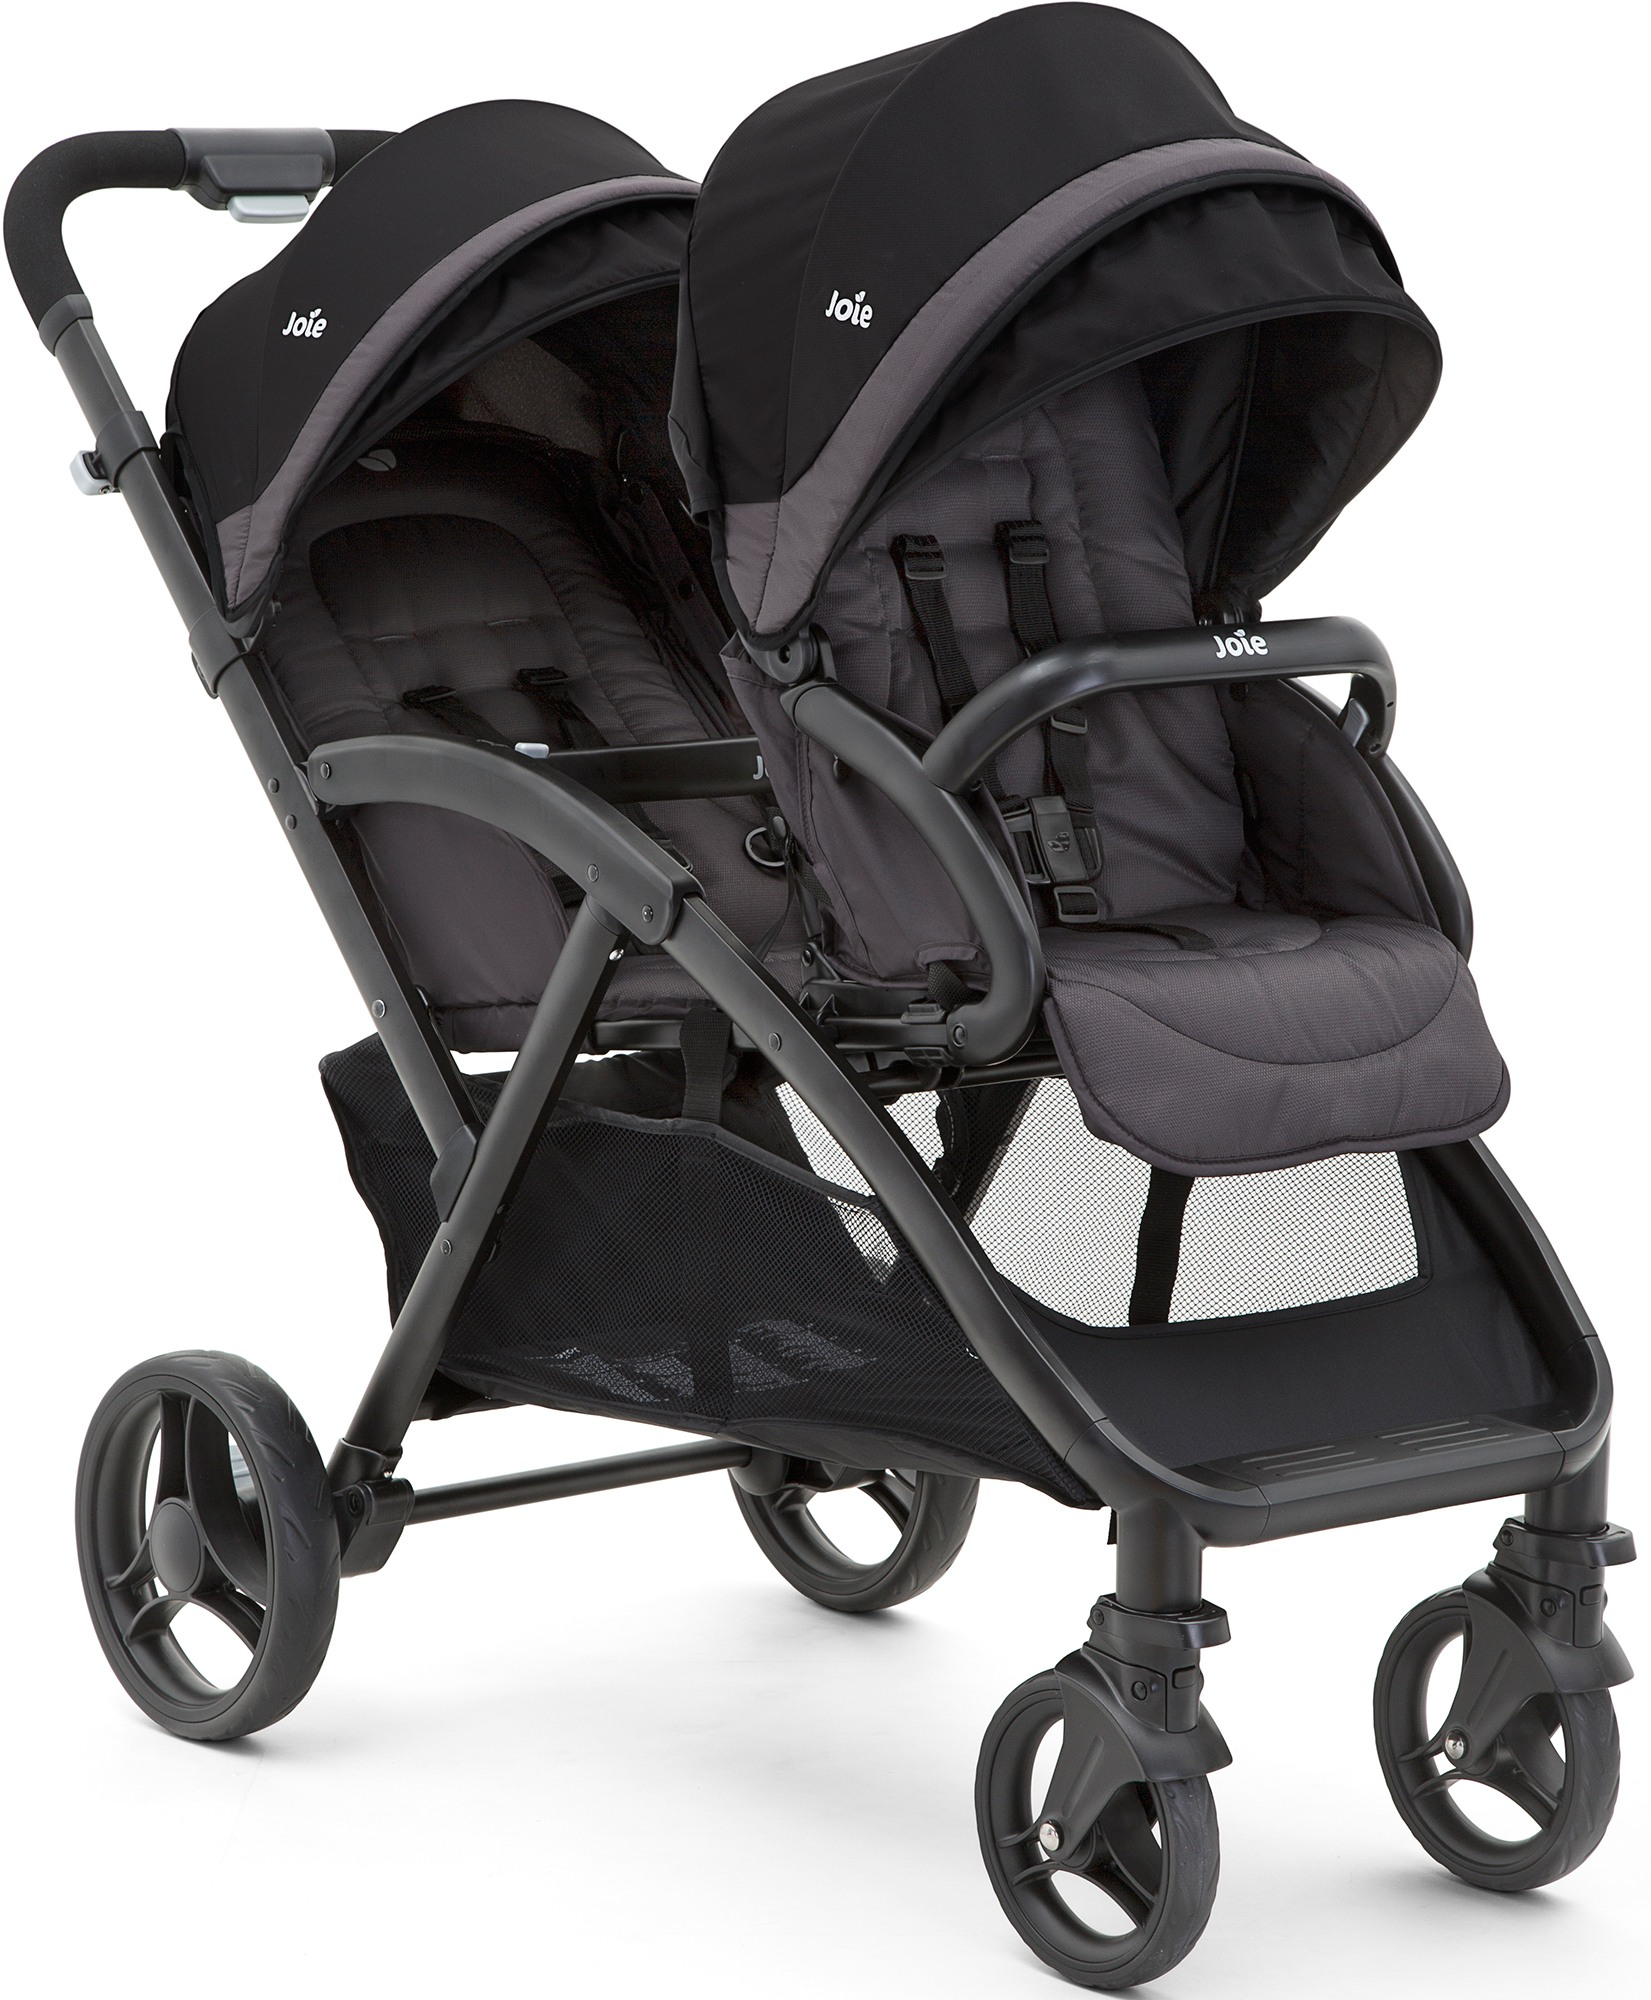 joie evalite duo twin poussette double buggy poussette b b bambin 0m bn ebay. Black Bedroom Furniture Sets. Home Design Ideas